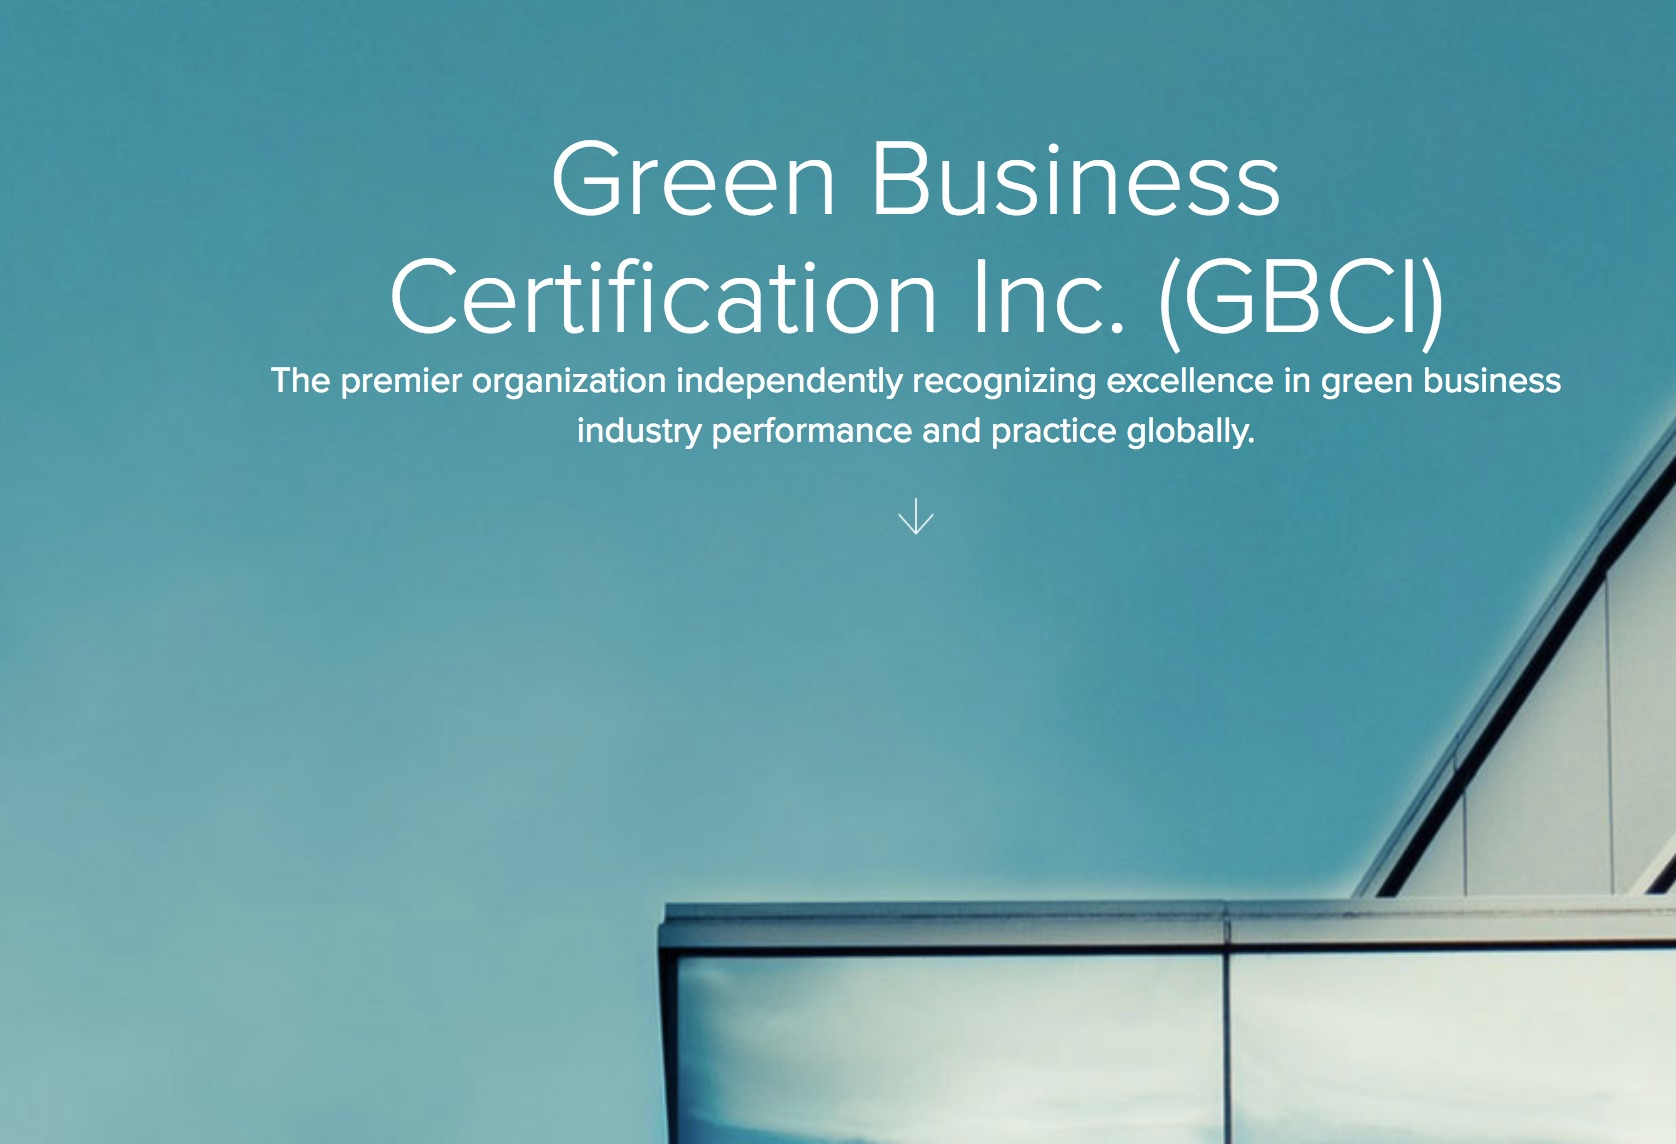 Gbci Canada Opens In Second Largest Market For Leed Green Building